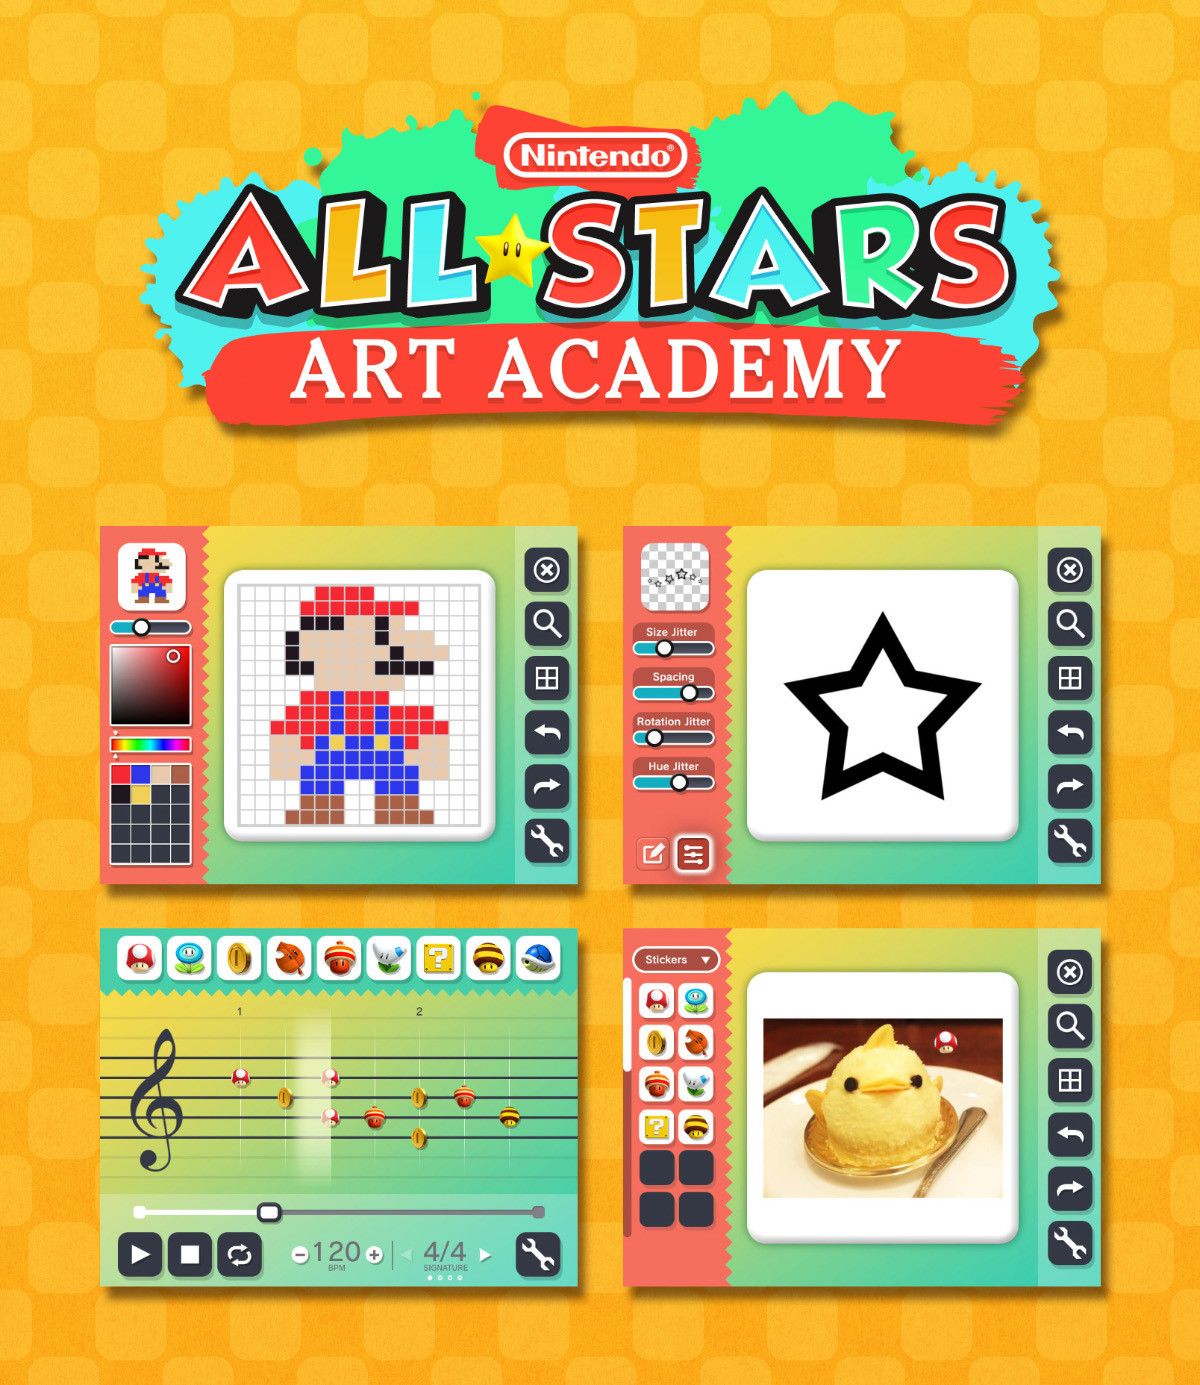 Nintendo All Stars Academy Gameplay & UI Mockup